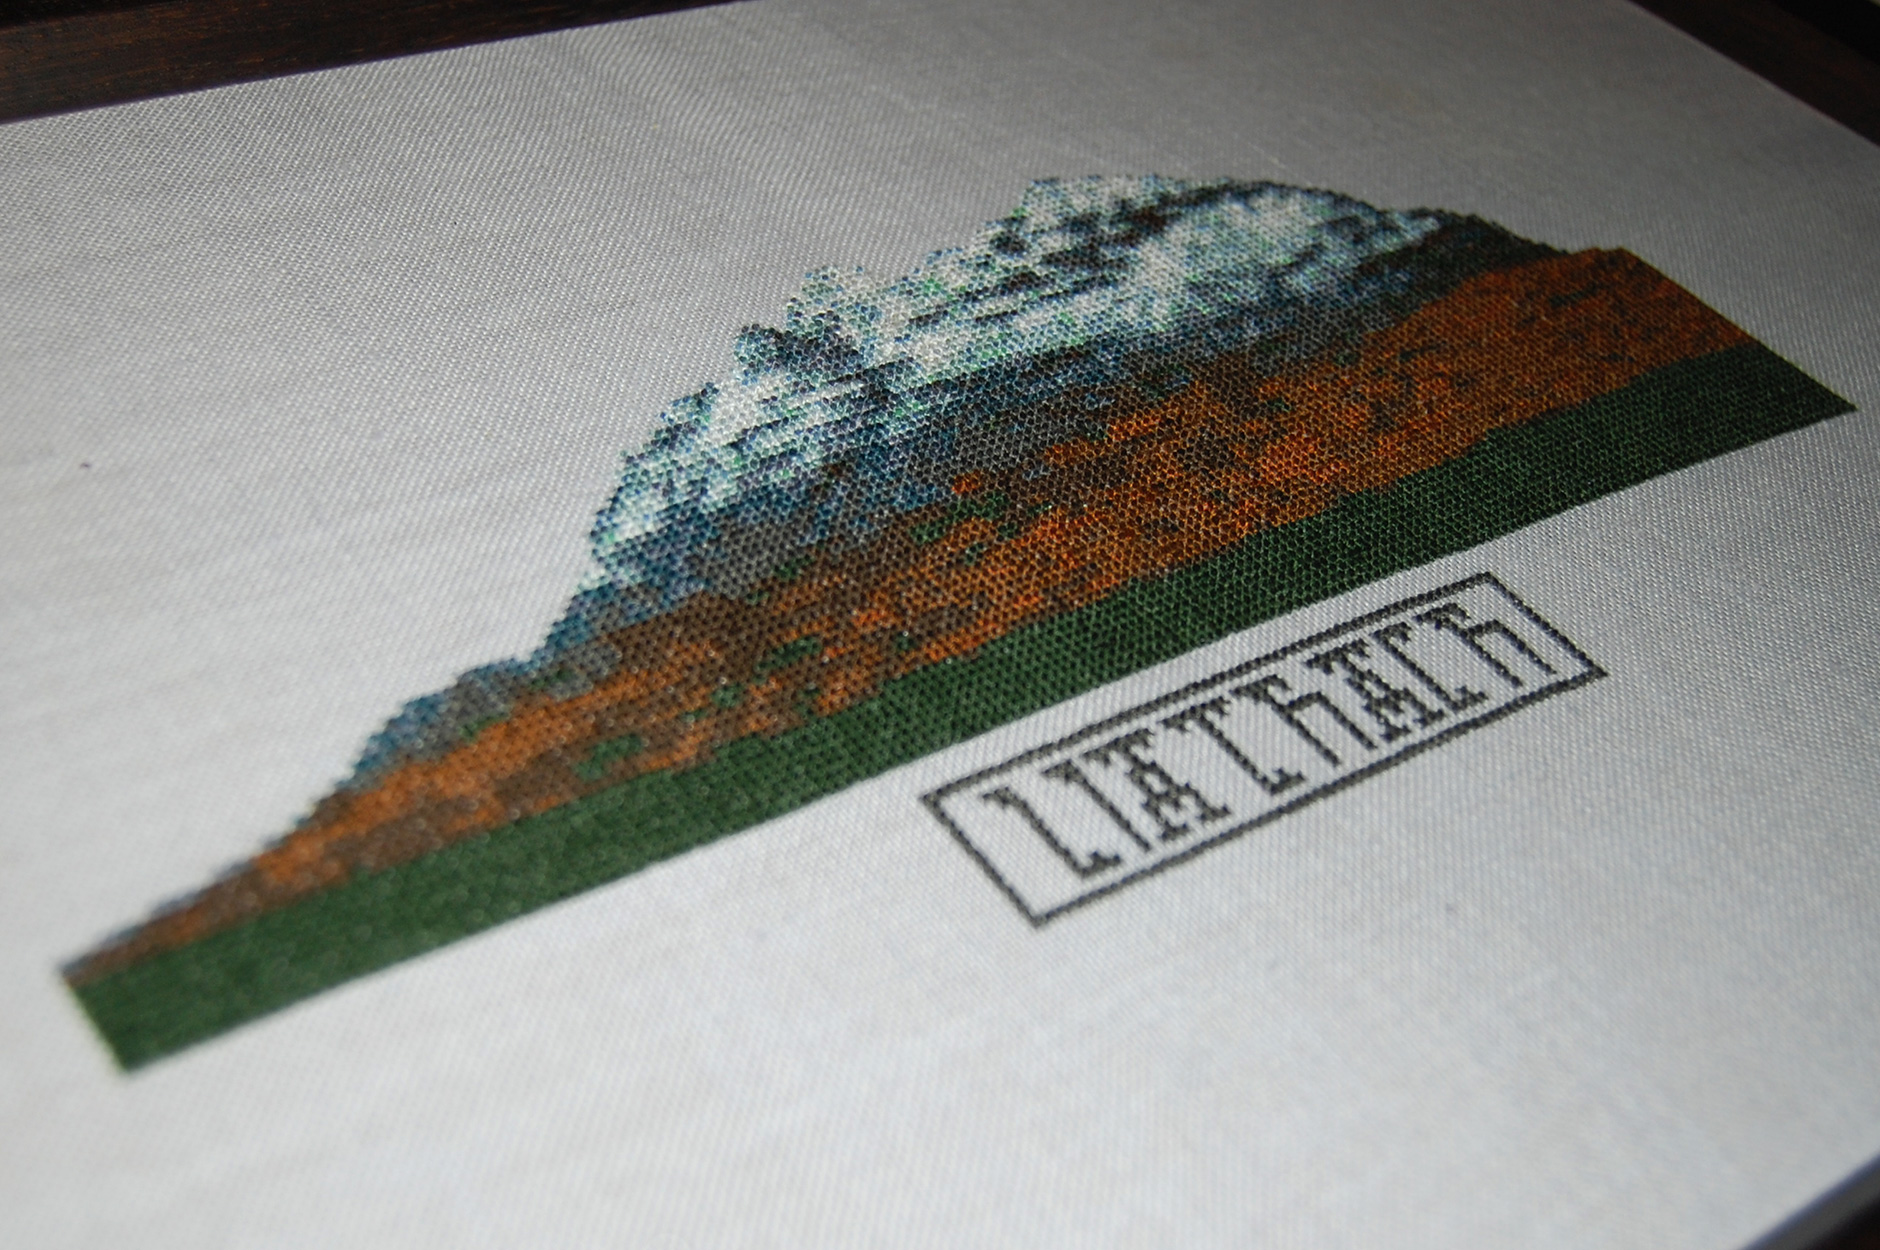 Liathach - Cross Stitched Embroidery Stitch Mountains Scotland Torridon